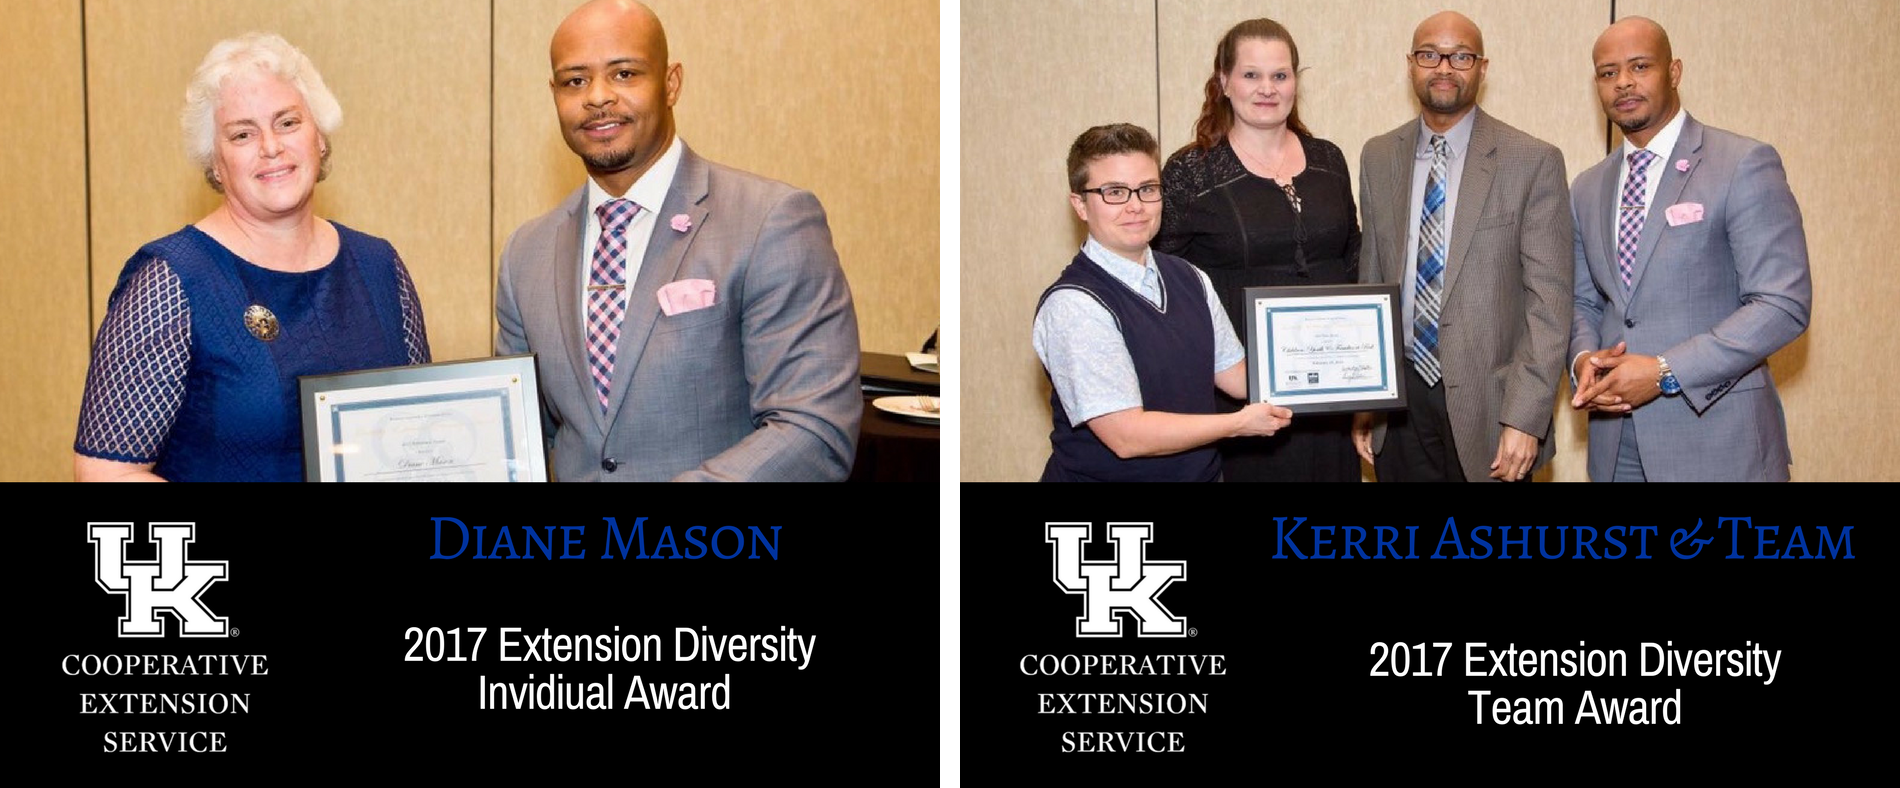 FCS Extension Professionals Diversity Awards